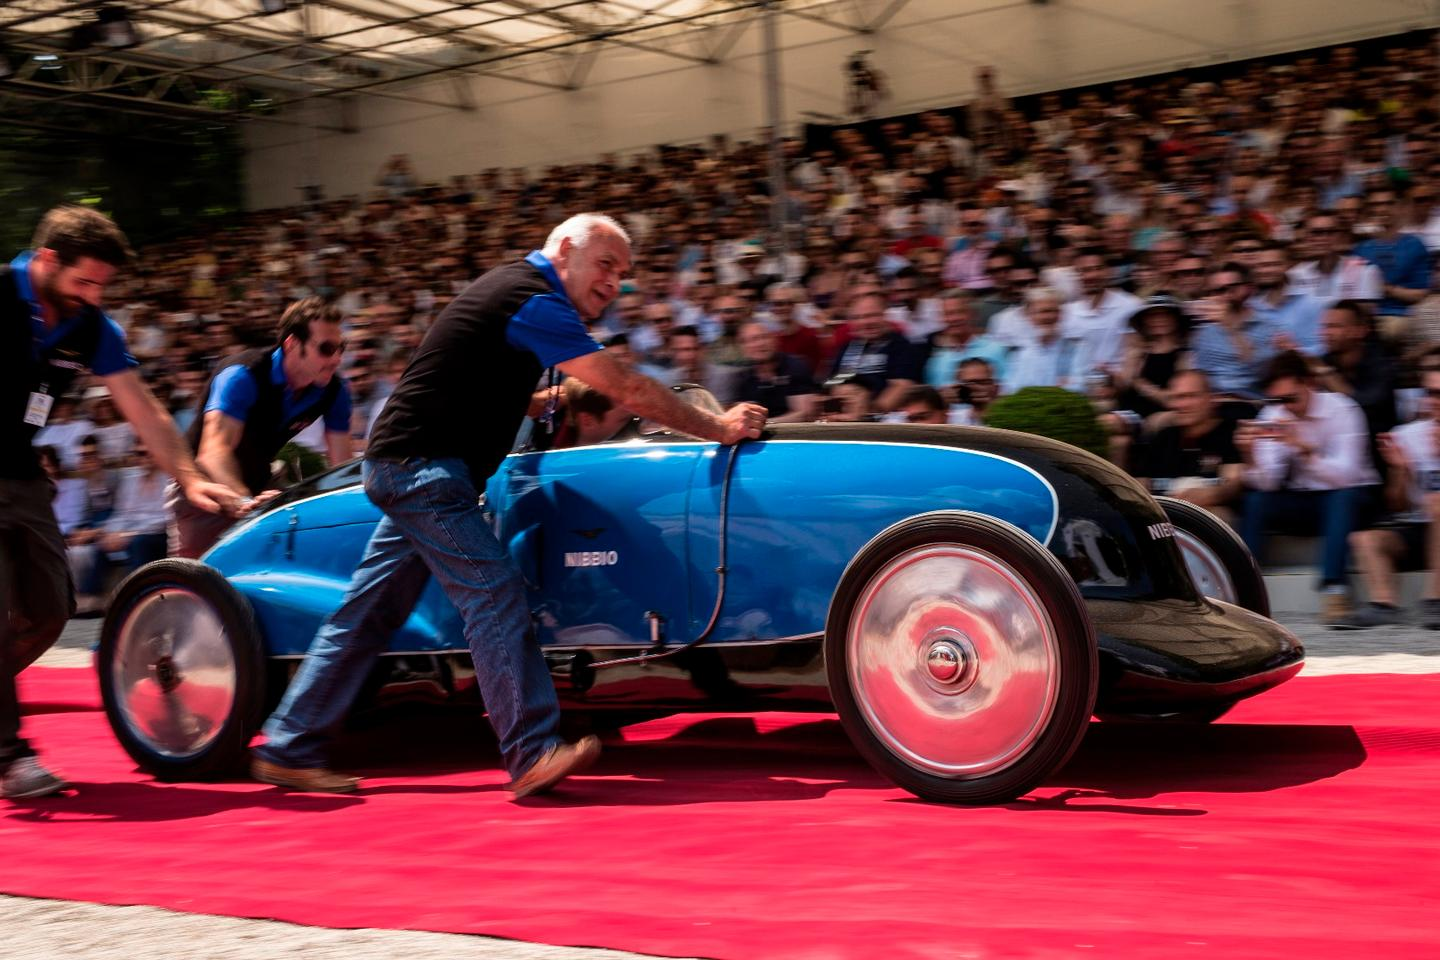 "The car voted ""Best of Show"" by the public on Saturday at Villa d'Este has a remarkable history. The car was designed and constructed in 1935 by Italian journalist, publisher, designer and racer Giovanni Lurani Cernuschi, VIIIth Count of Calvenzano (1905 – 1995) who went on to break numerous records driving the car. Though it is now 82 years-of-age, the car remains in the same family and was presented at Villa d'Este by the grandson of Cernuschi, Federico Göttsche Bebert, pictured in the car."